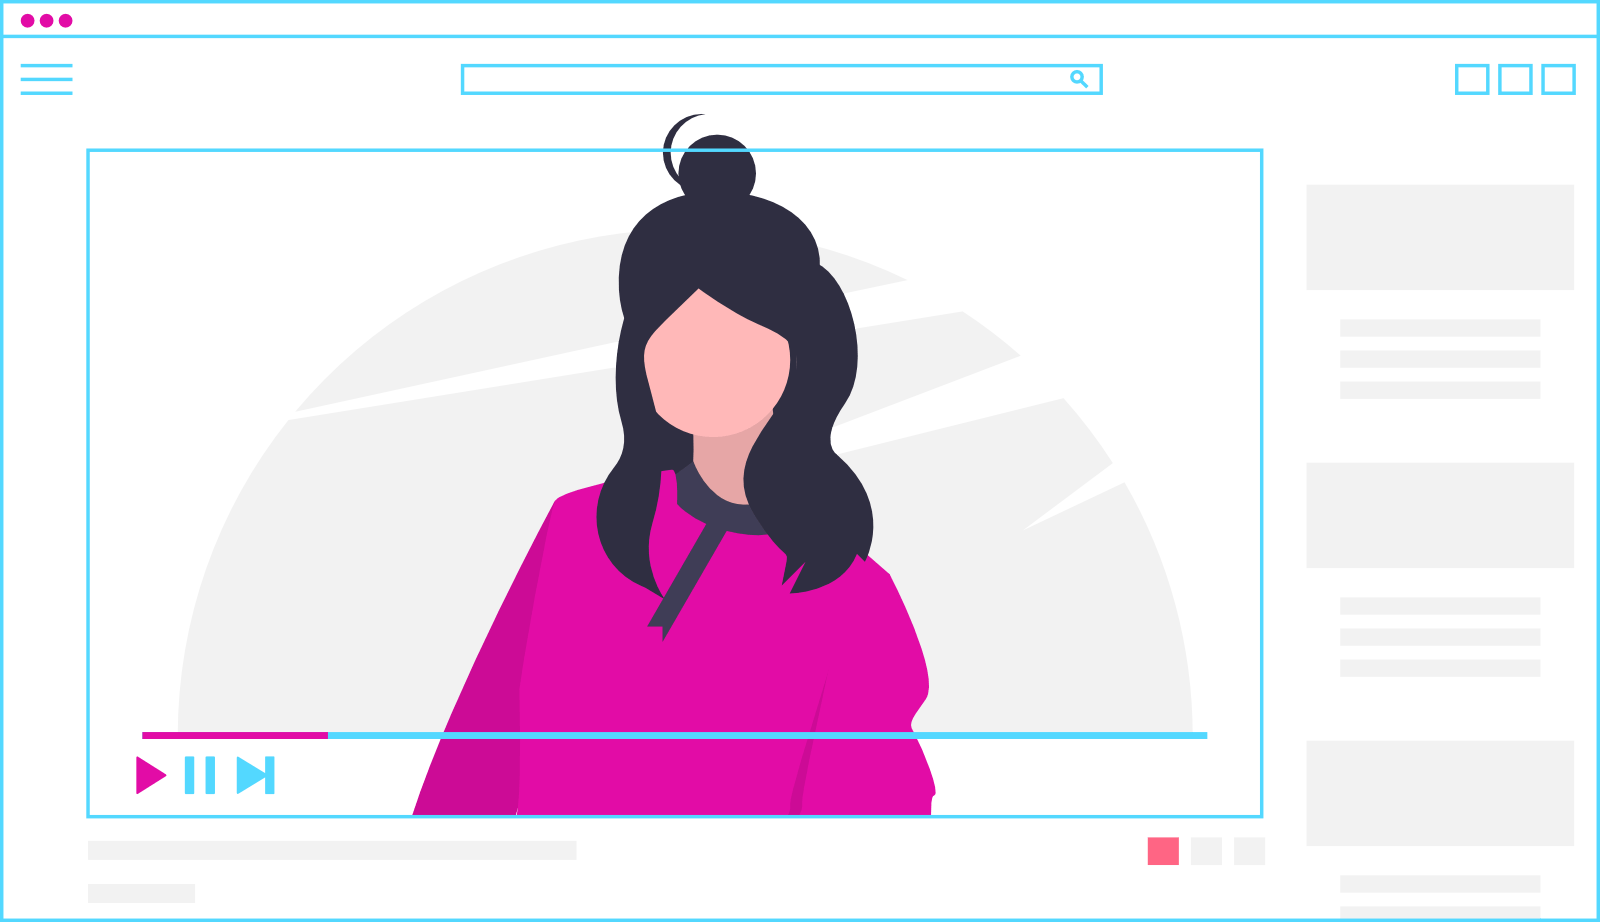 Explainer video character